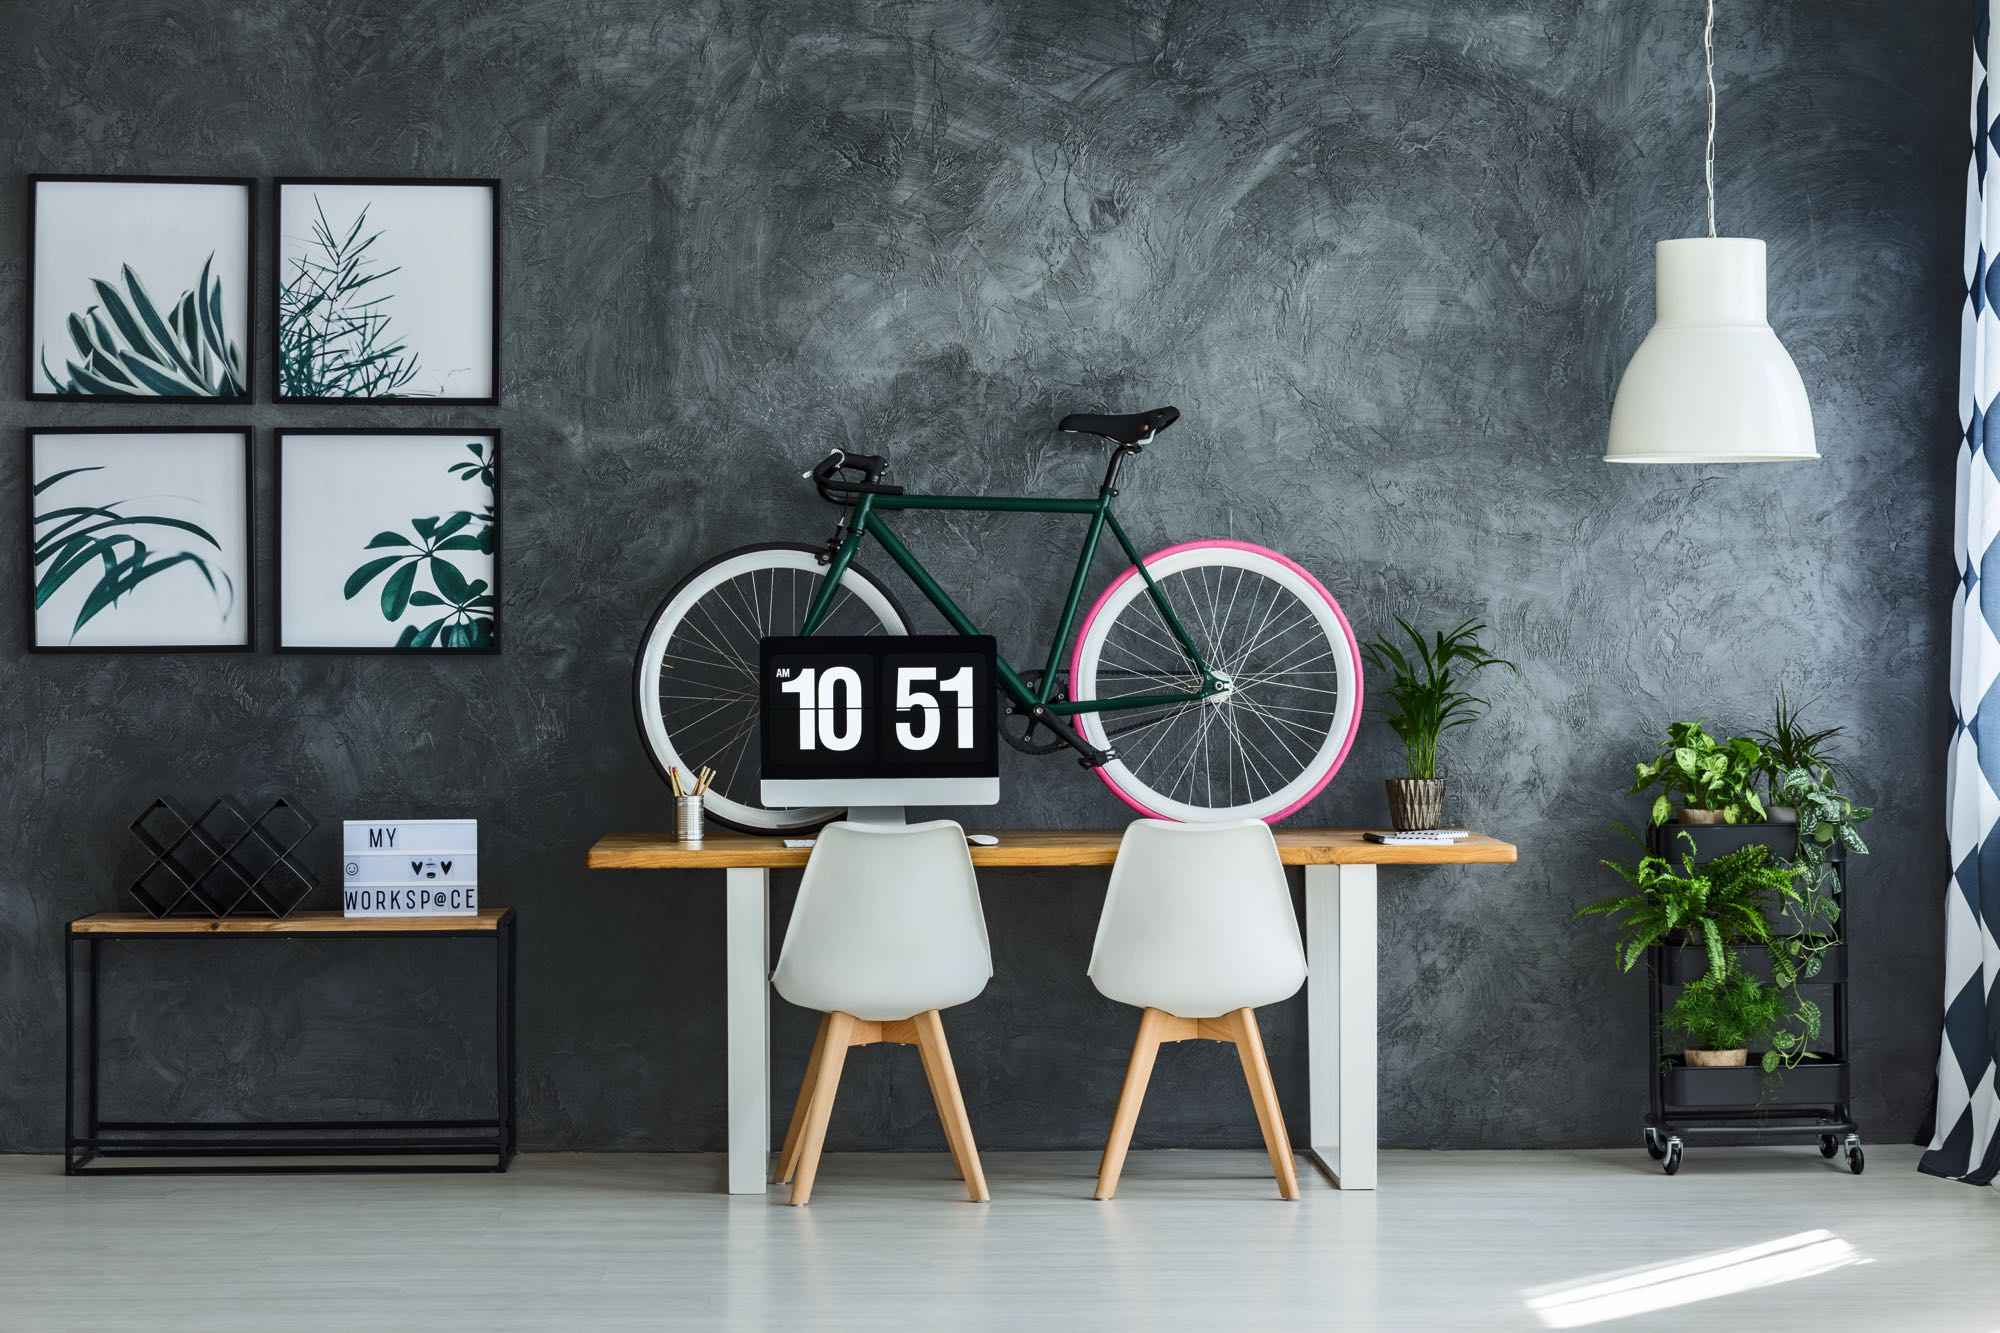 modern-interior-with-bright-posters-PZ6DG6X